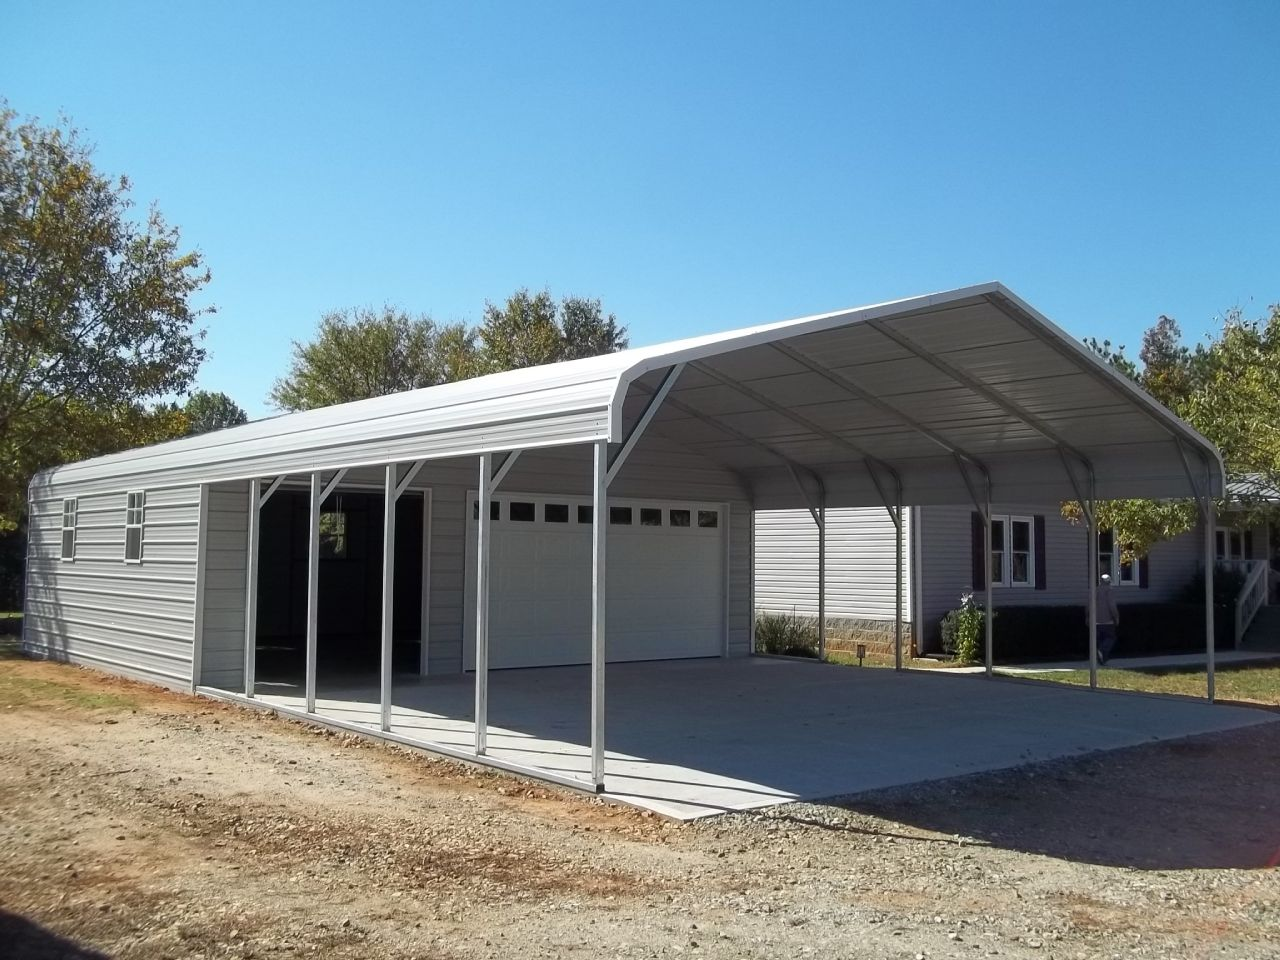 Typically, the shed is the width of the carport and can be